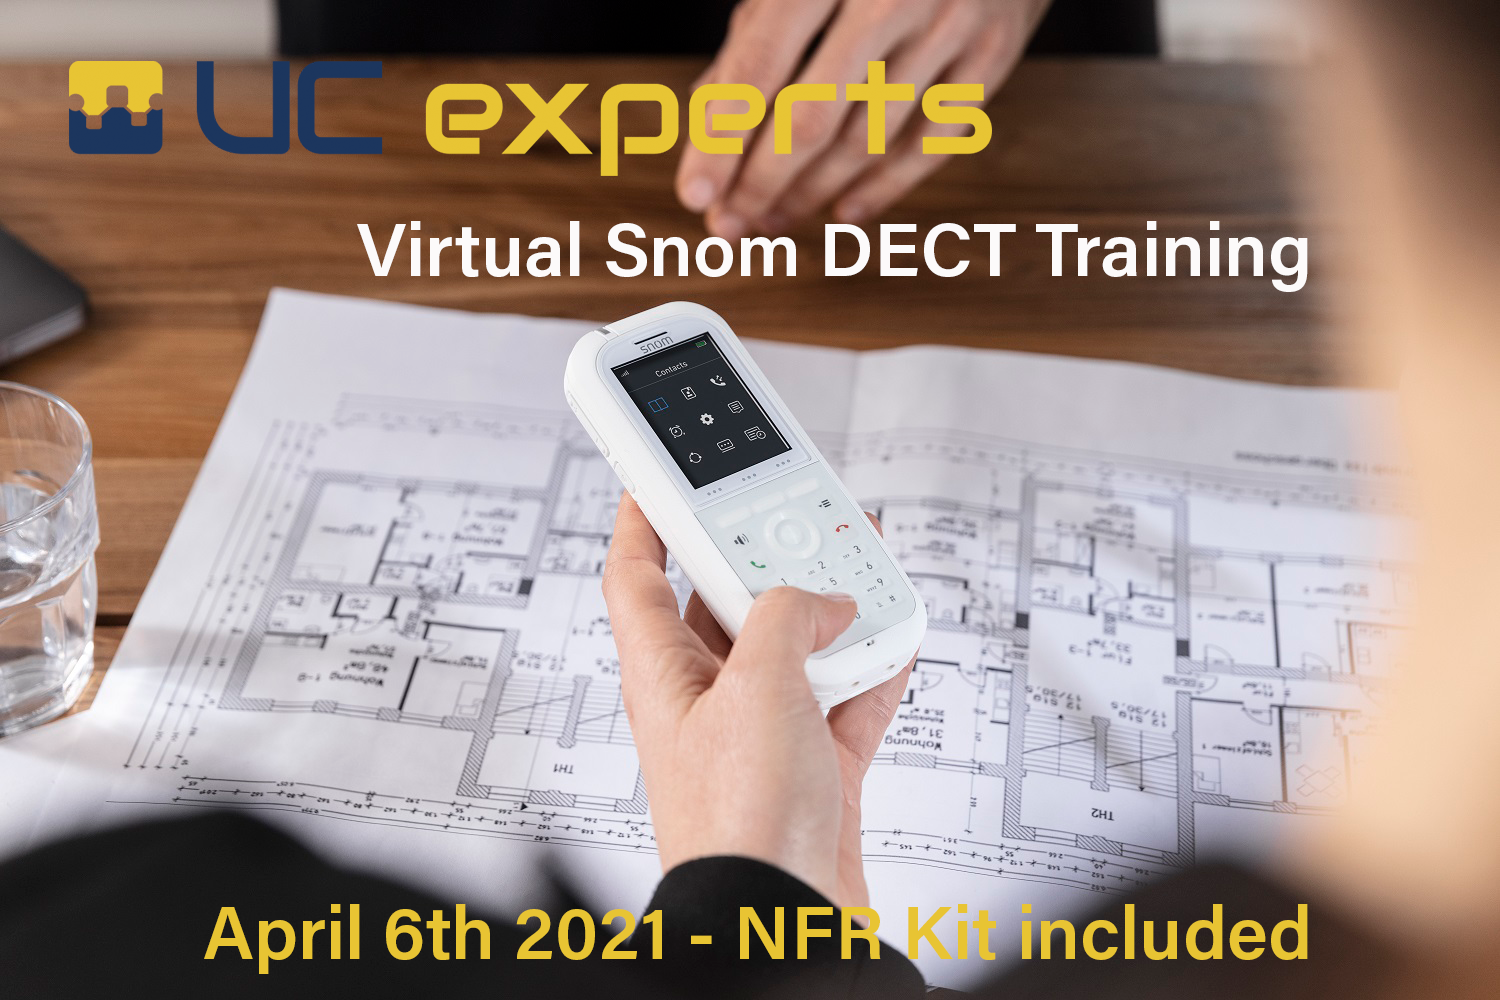 UC experts Academy - Snom DECT training - April 6th 2021